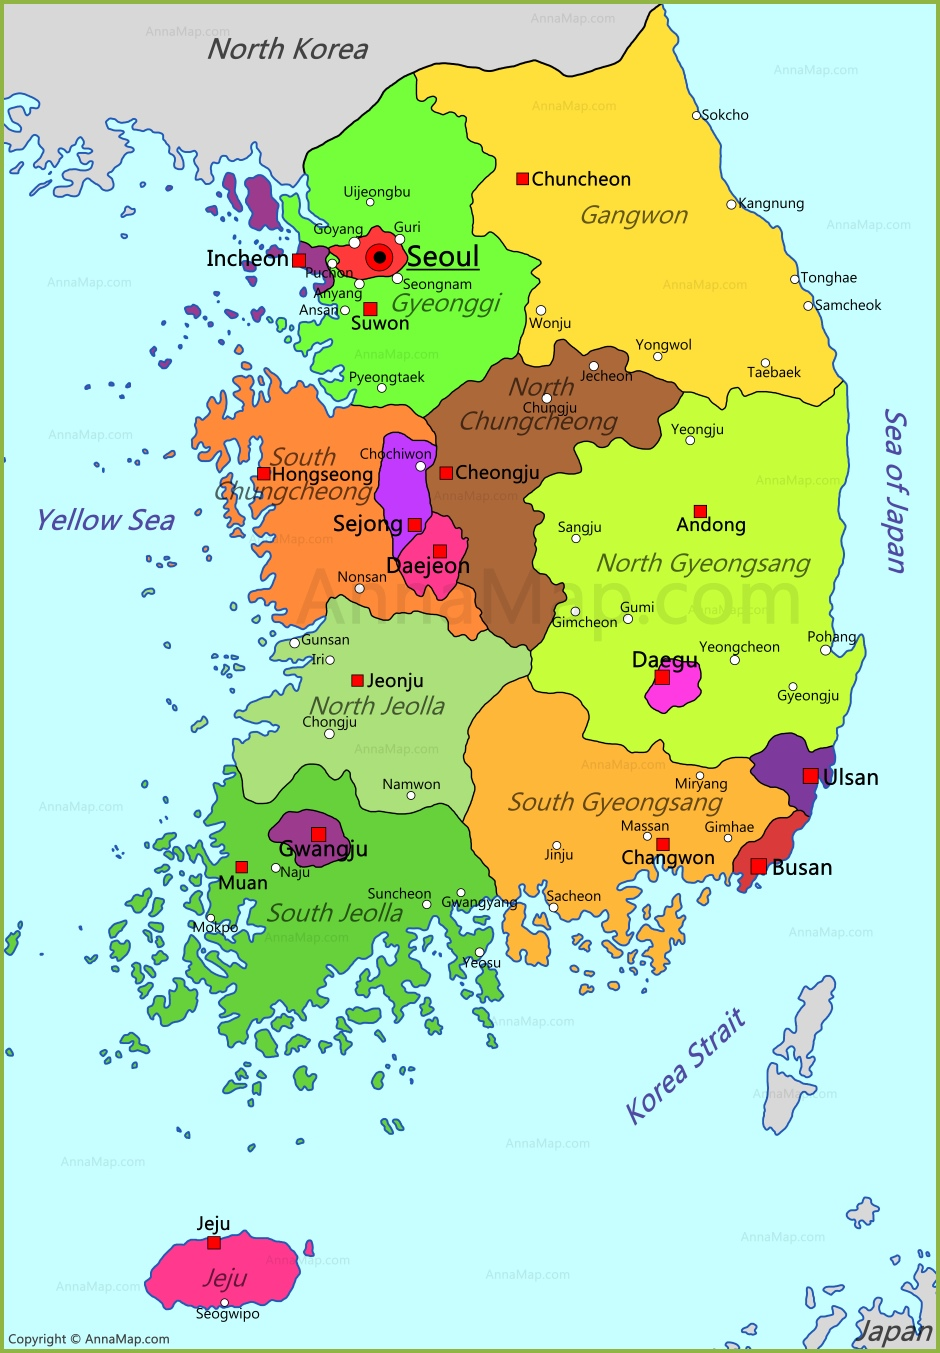 Map Of South Korea South Korea Map | Map of South Korea   AnnaMap.com Map Of South Korea